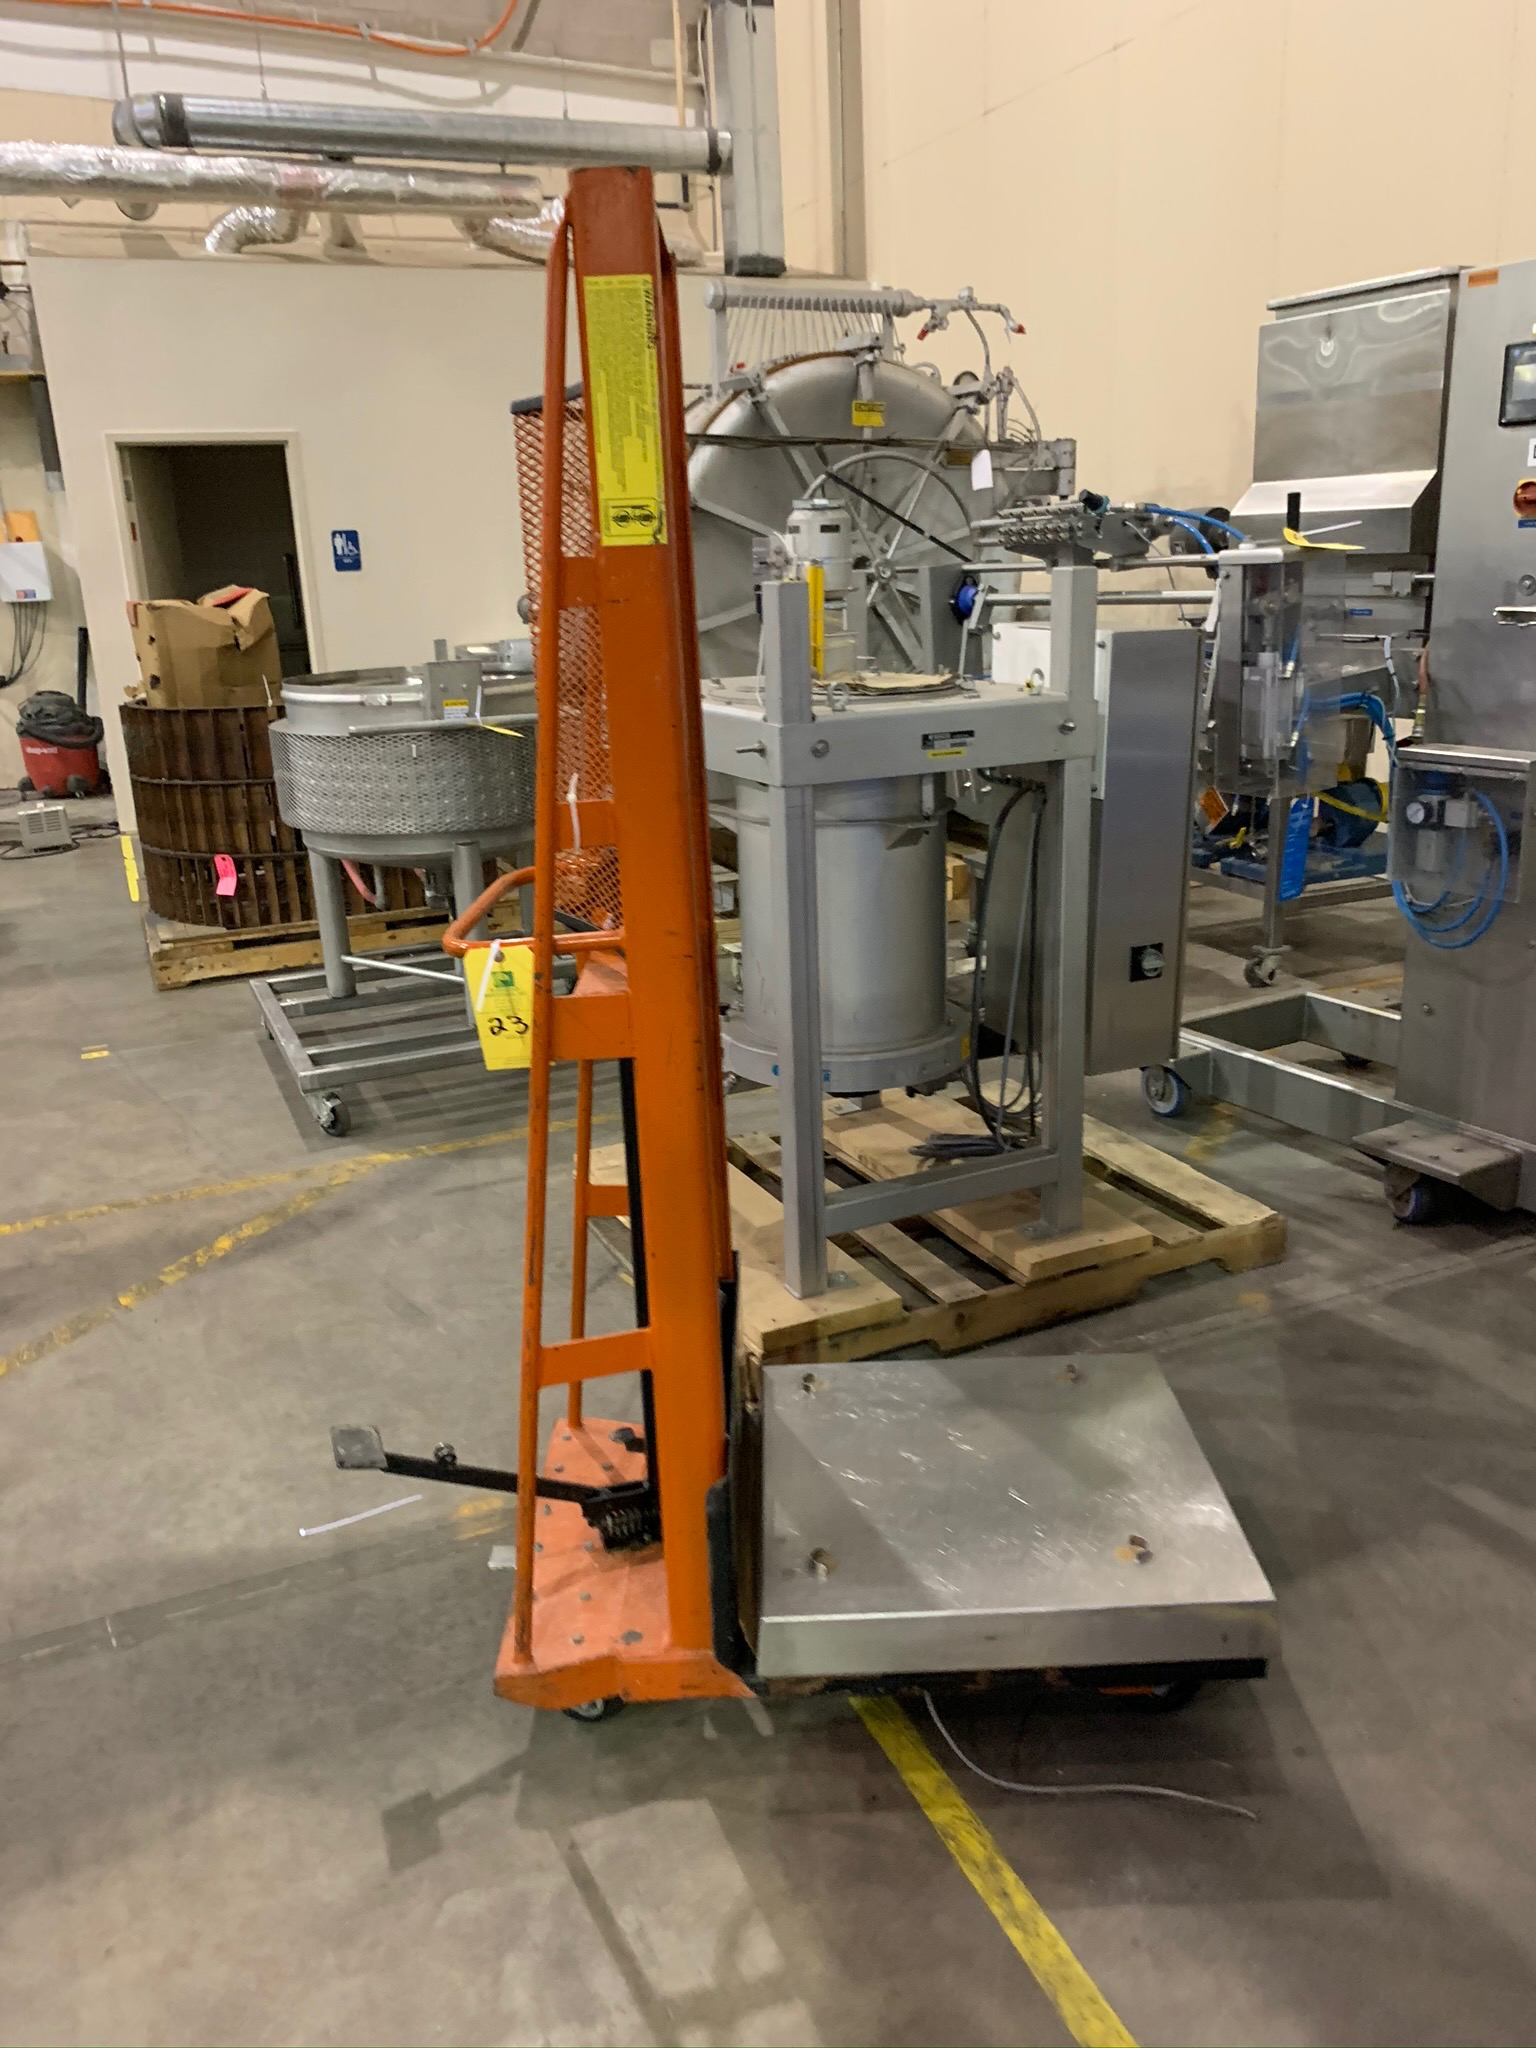 Lot 23 - Wesco Product Lift (Rigging Fee - $25)